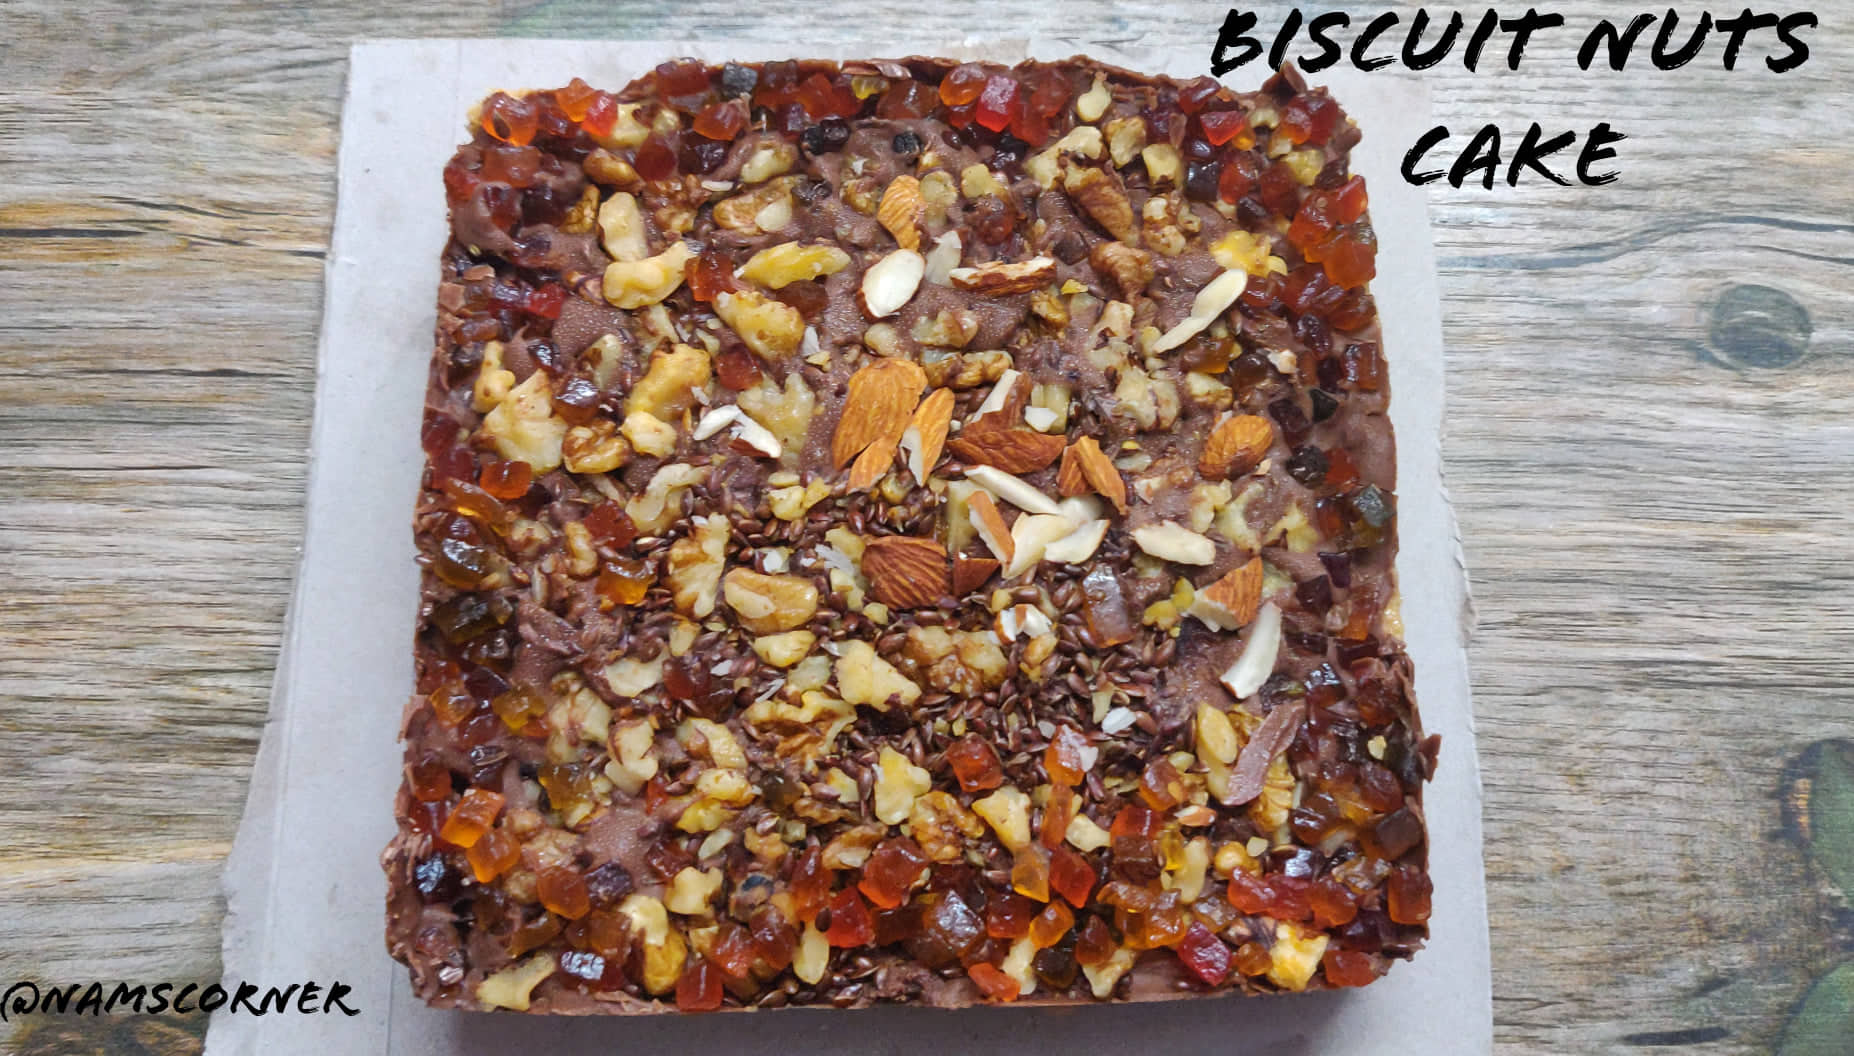 Biscuit Nuts Cake Recipe | Quick No Bake Biscuit Nuts Cake